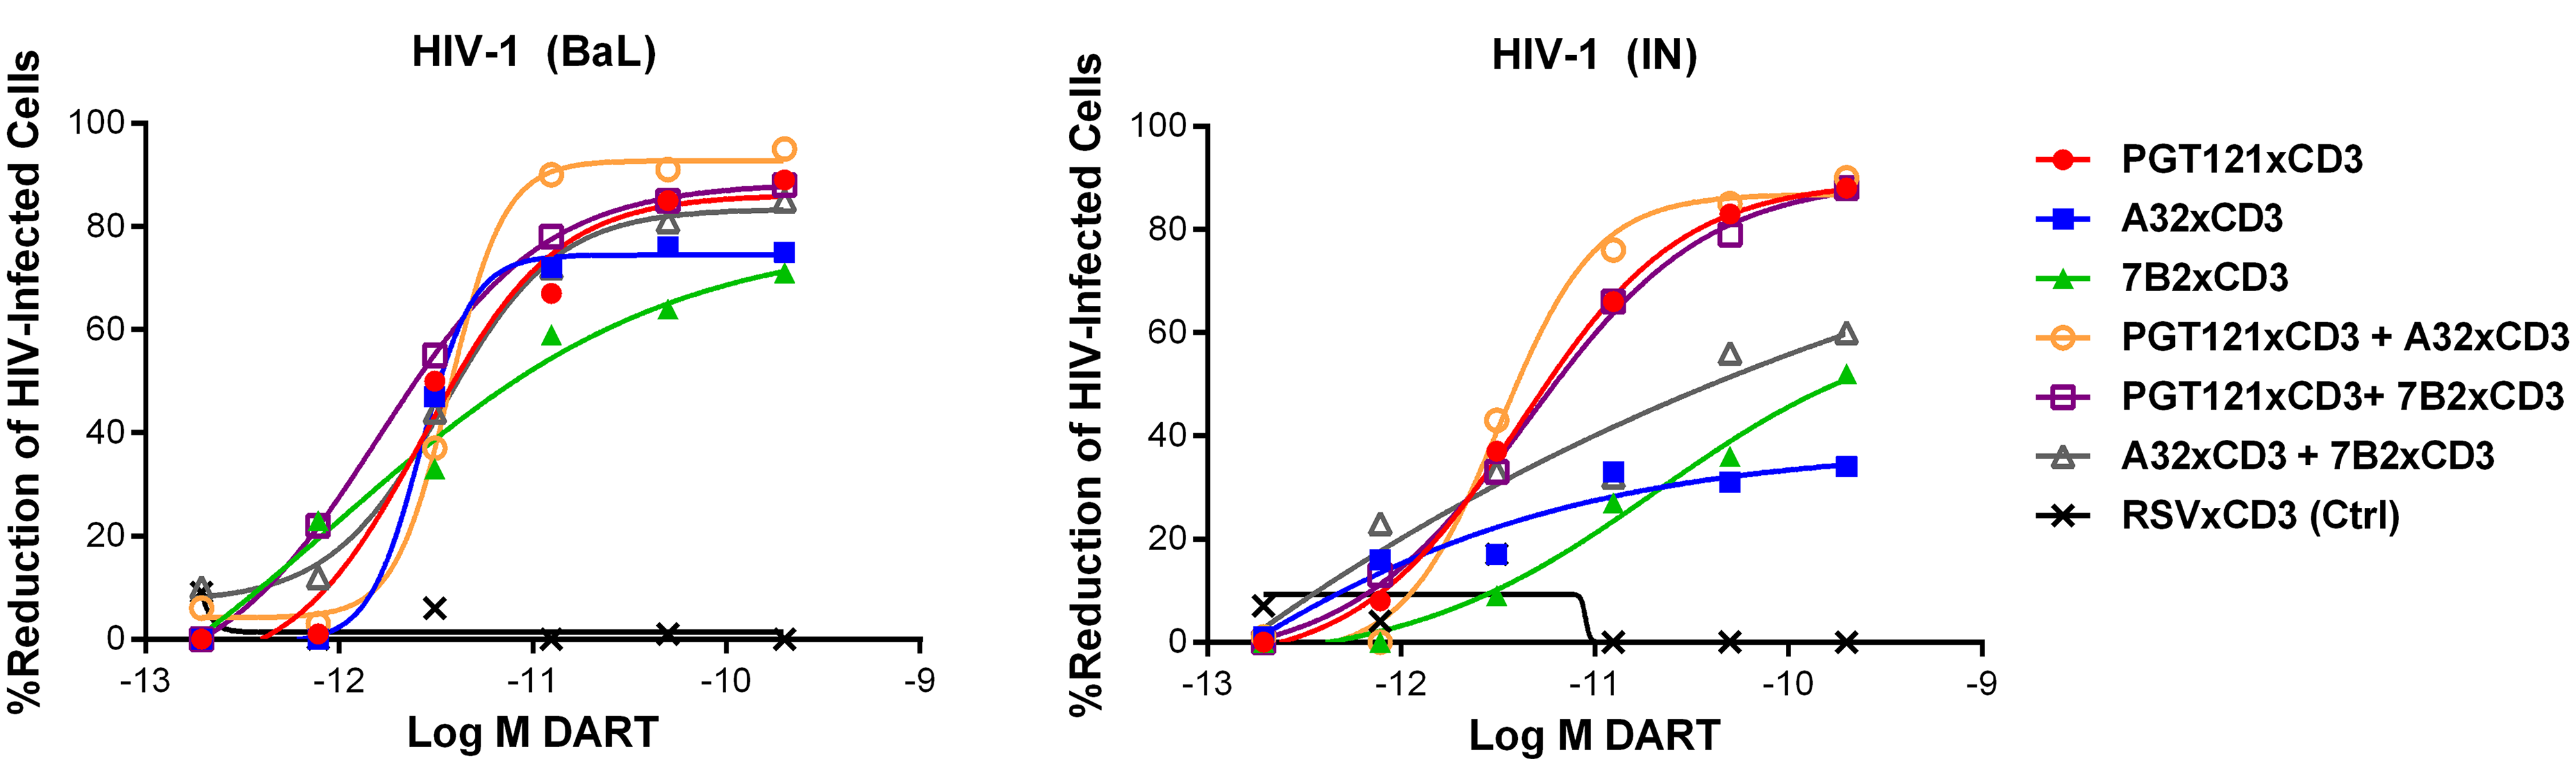 Combinations of HIVxCD3 DARTs induce CD8 T cell-dependent cytolysis of CD4 T cells infected with HIV-1 in vitro.